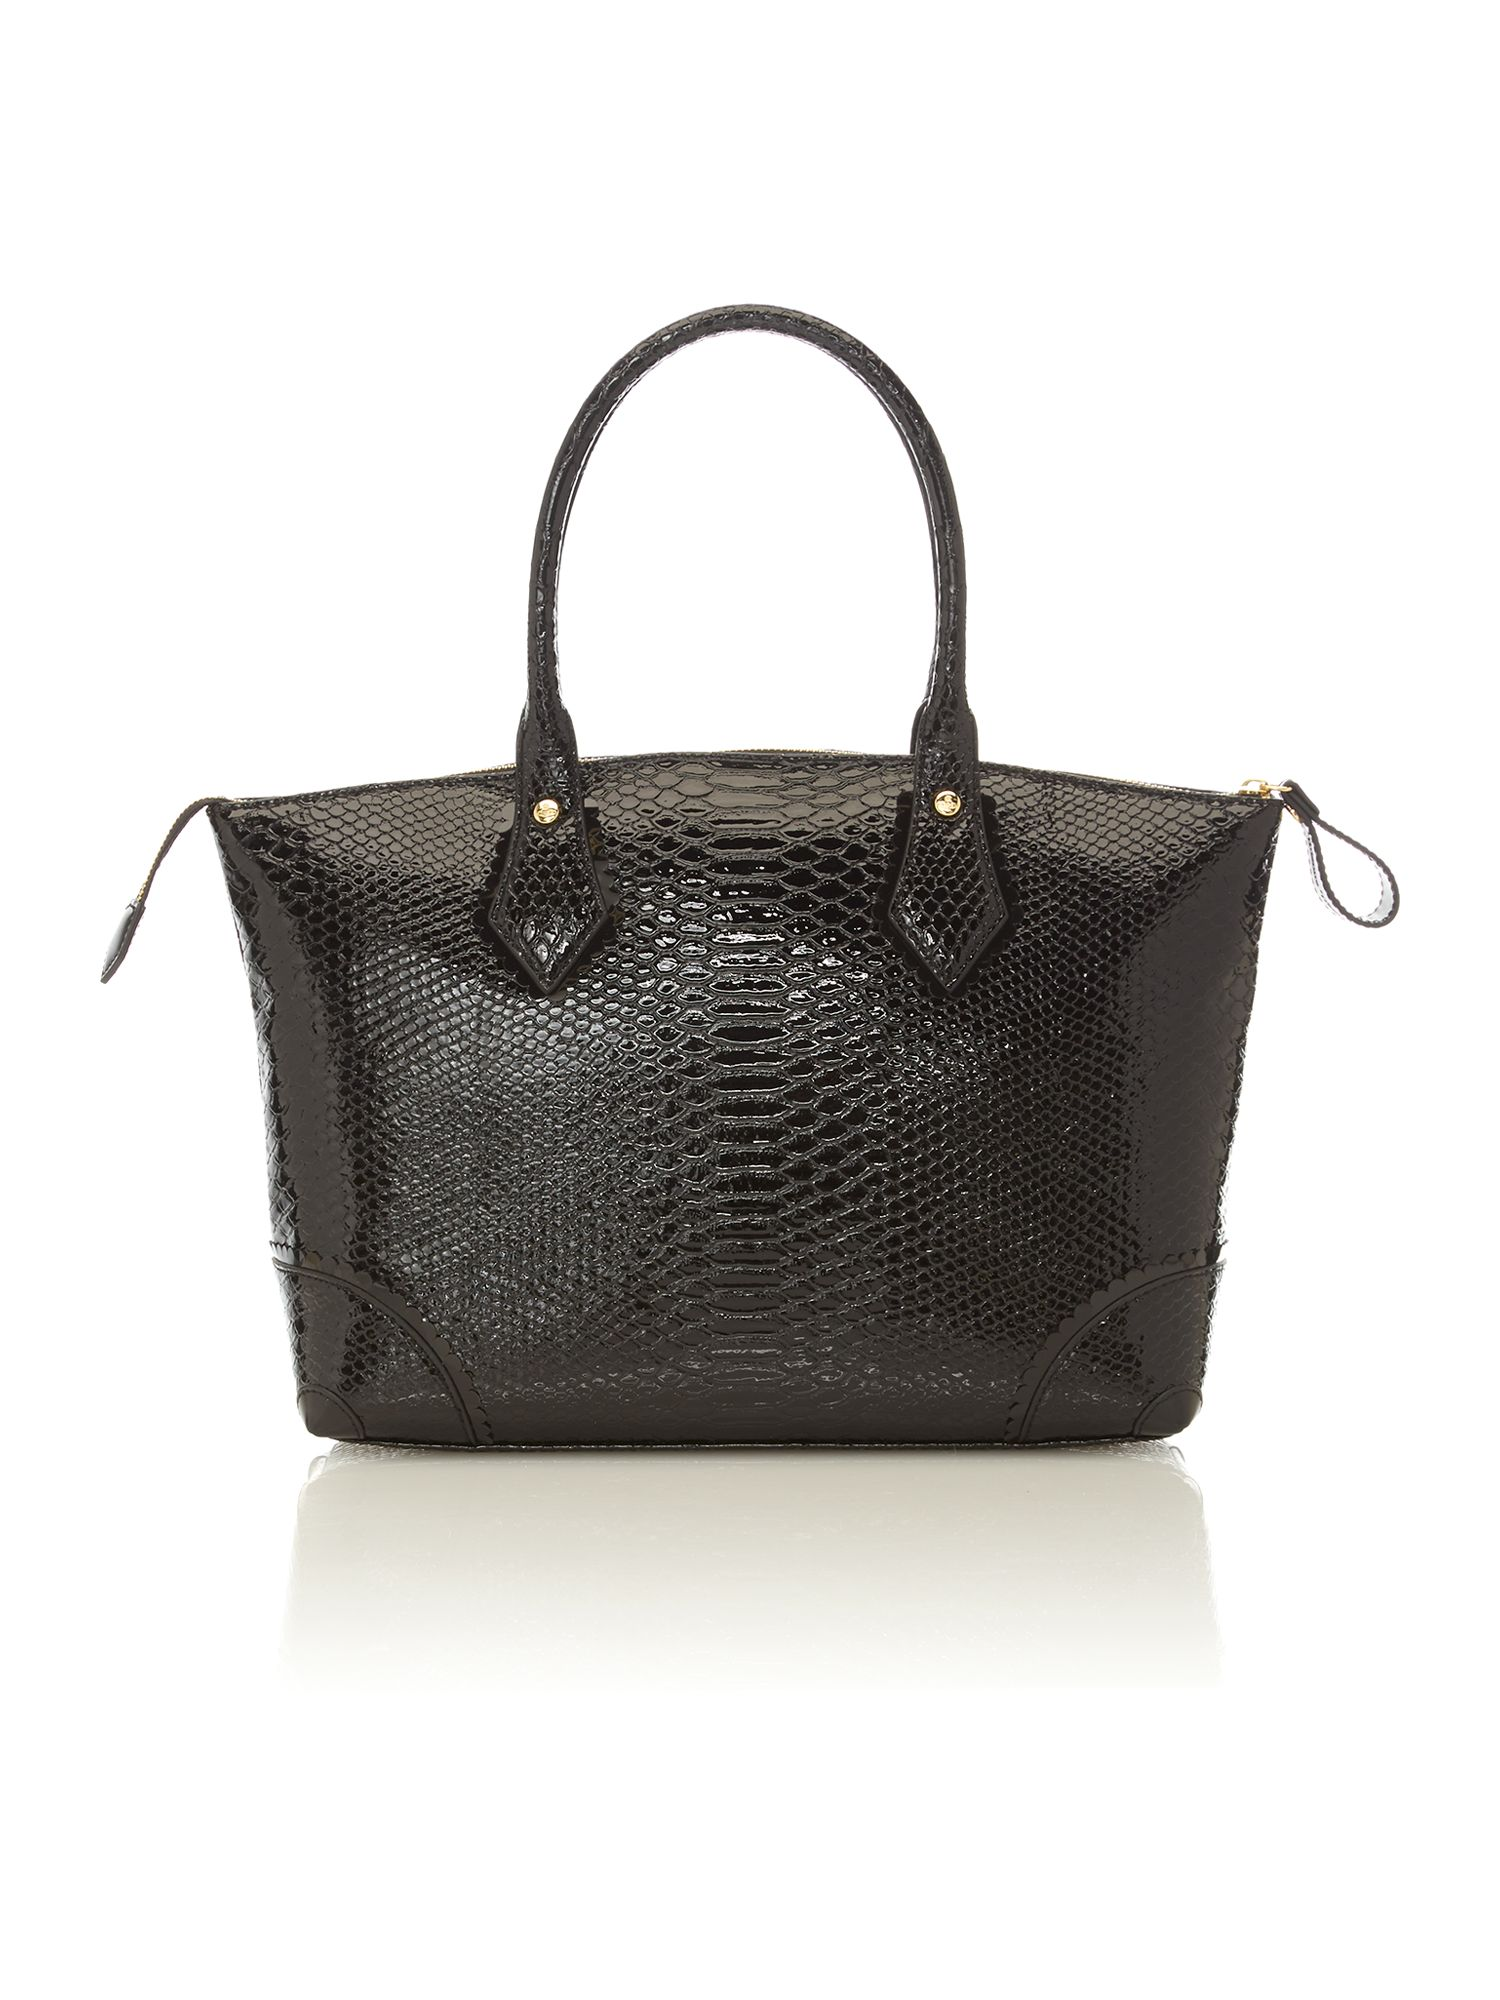 Frilly Snake large black tote bag